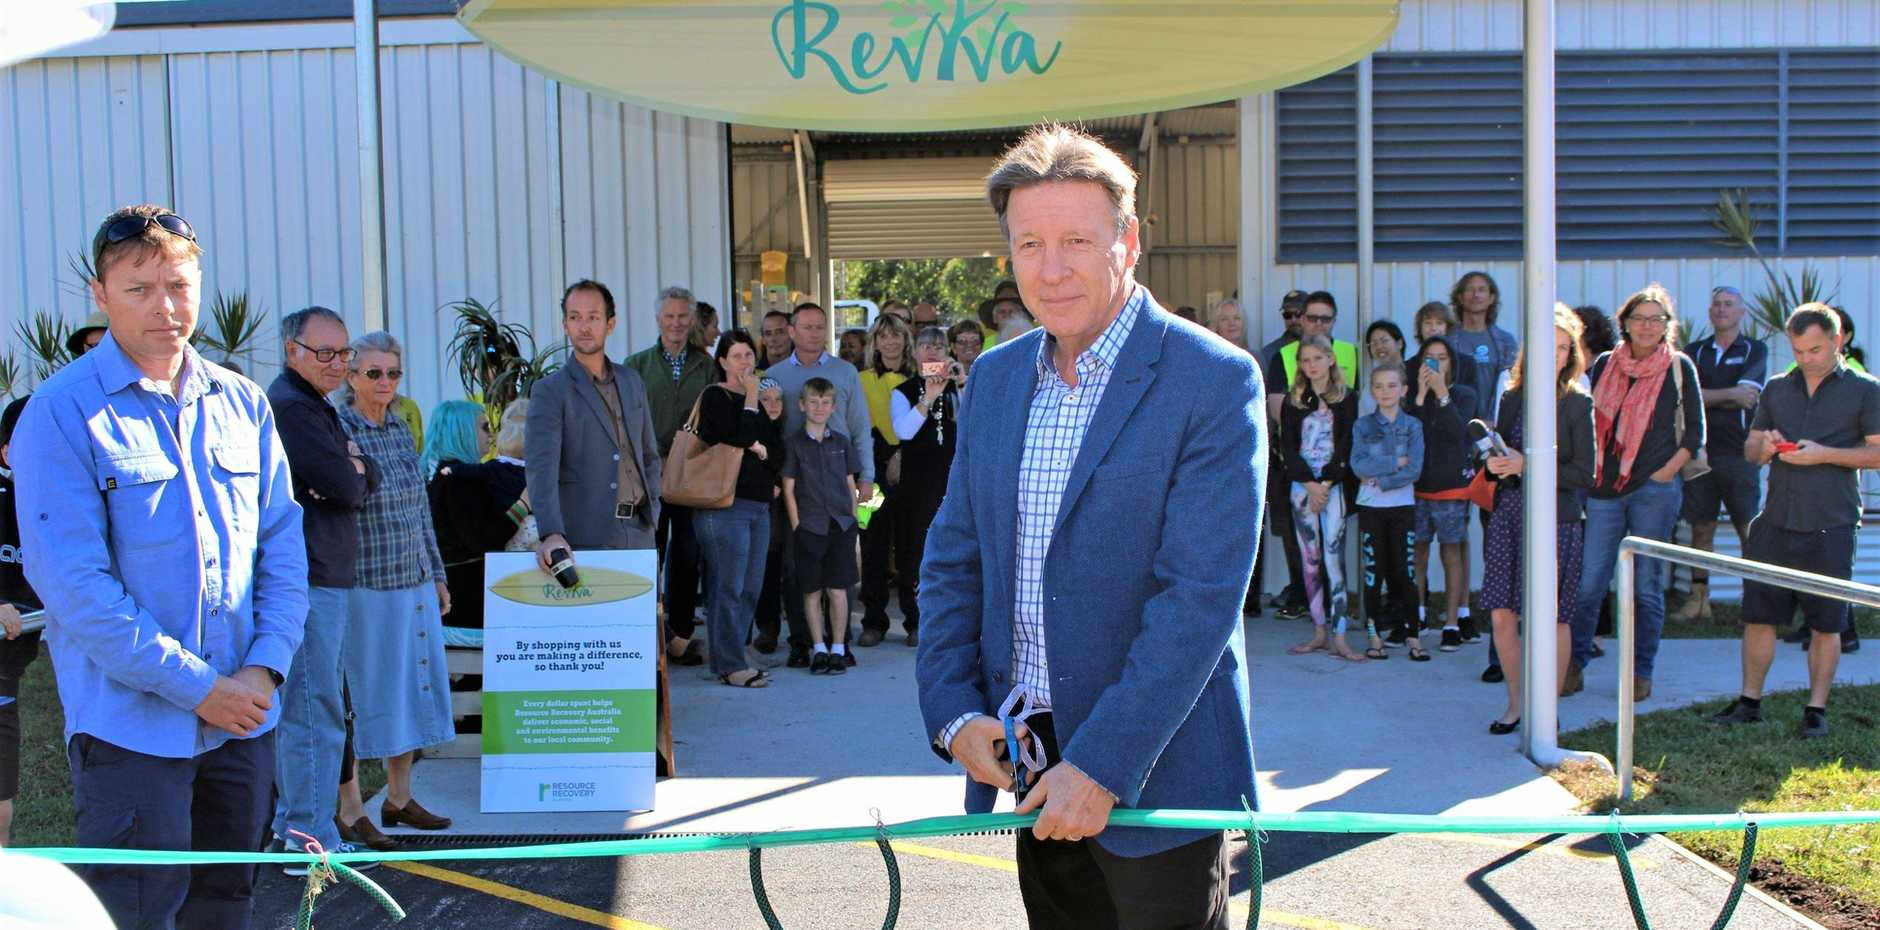 REVITALISED TIP SHOP: Mayor Tony Wellington cuts the (recycled) tape to officially open Reviva.